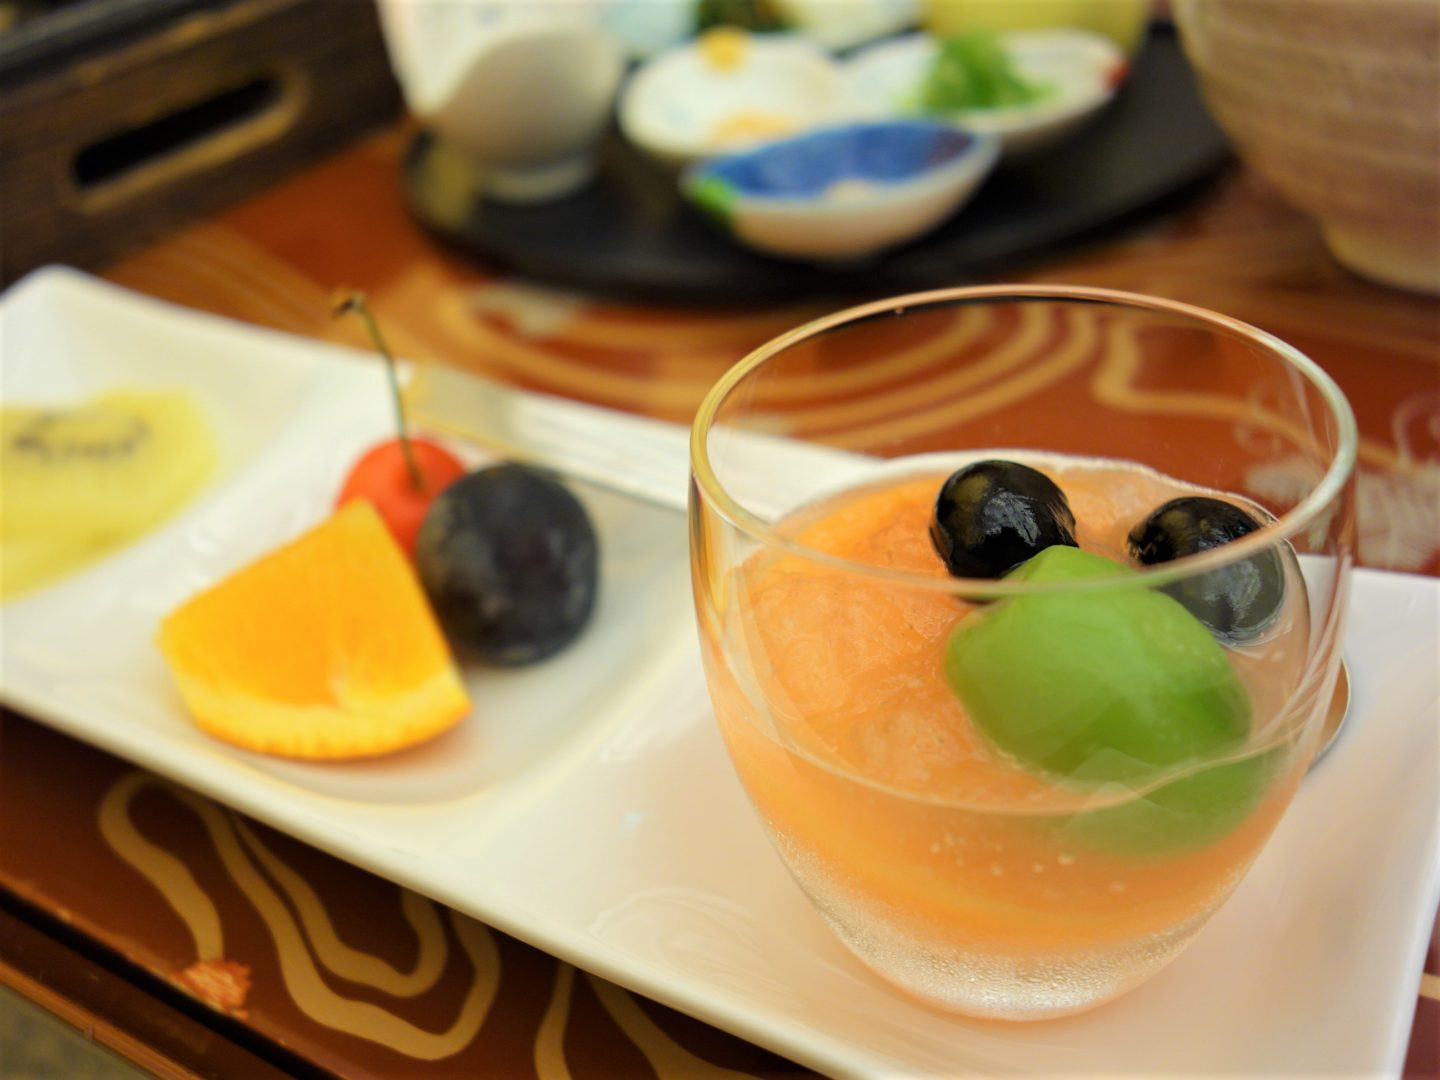 Dessert plate with jelly and fruits